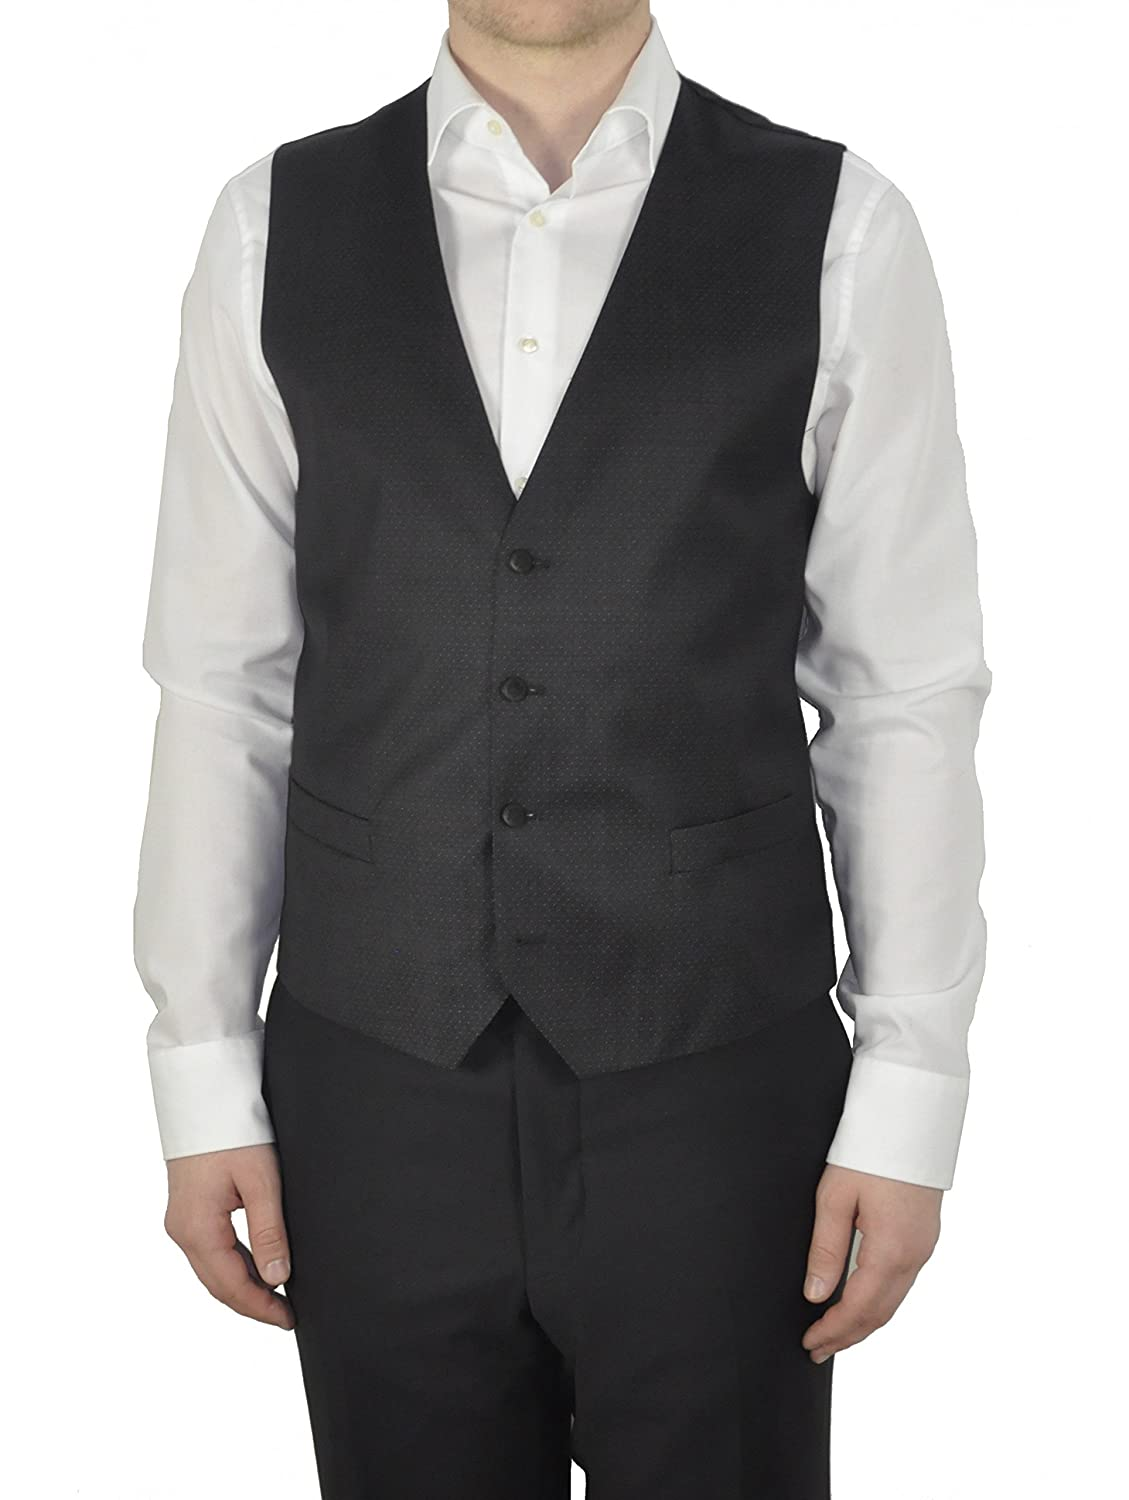 Michaelax-Fashion-Trade Men's Plain Sleeveless Waistcoat